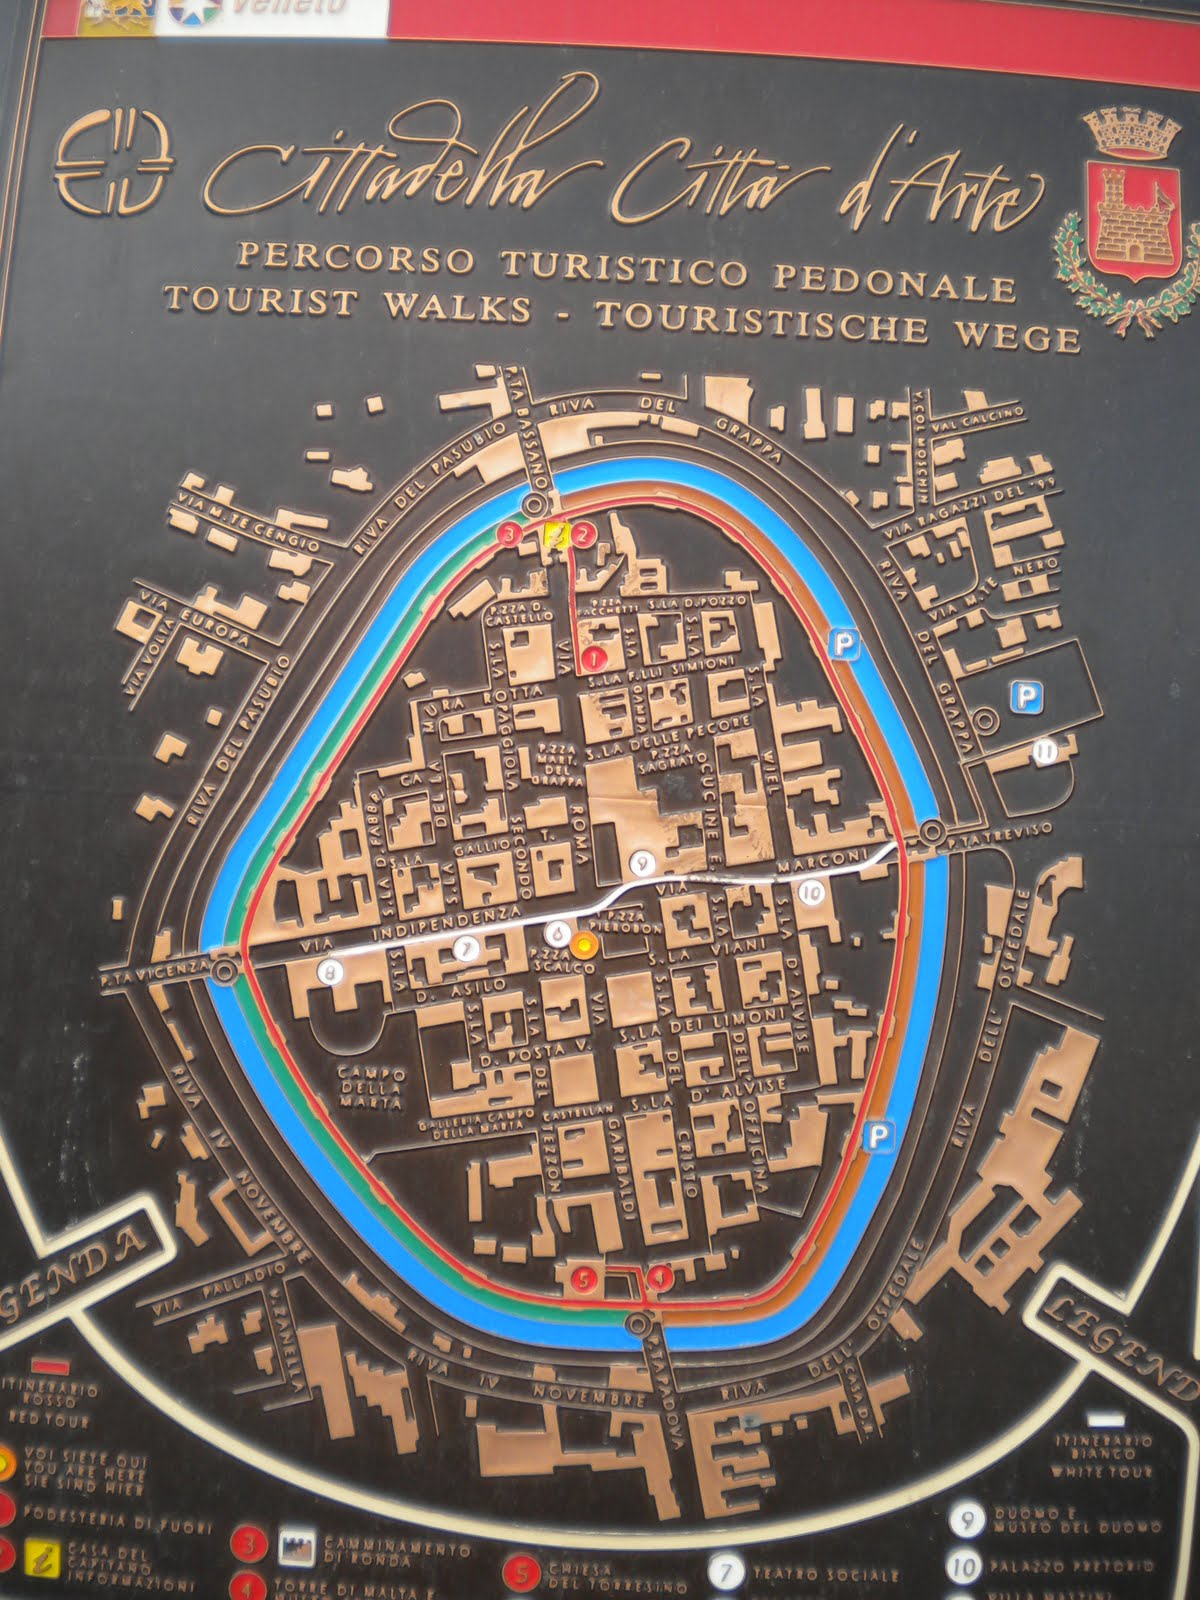 if you expand this photo of the cittadella map you ll see stradella simioni